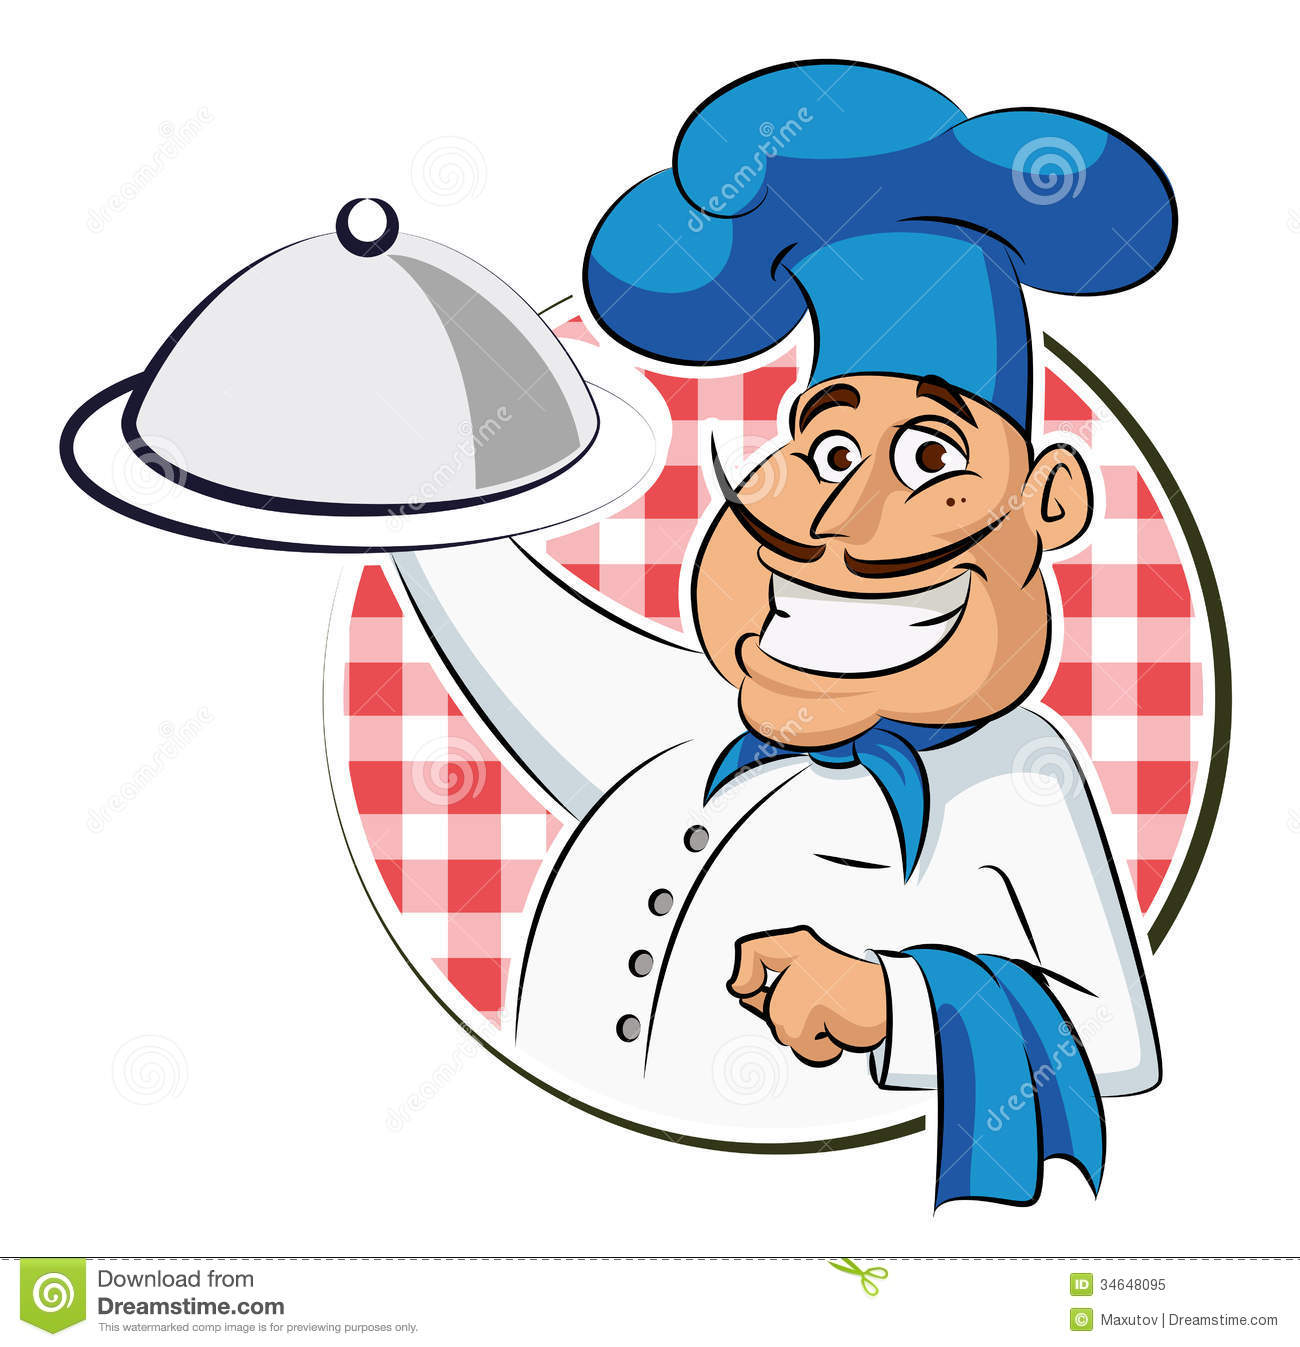 family restaurant clipart | clipart panda - free clipart images